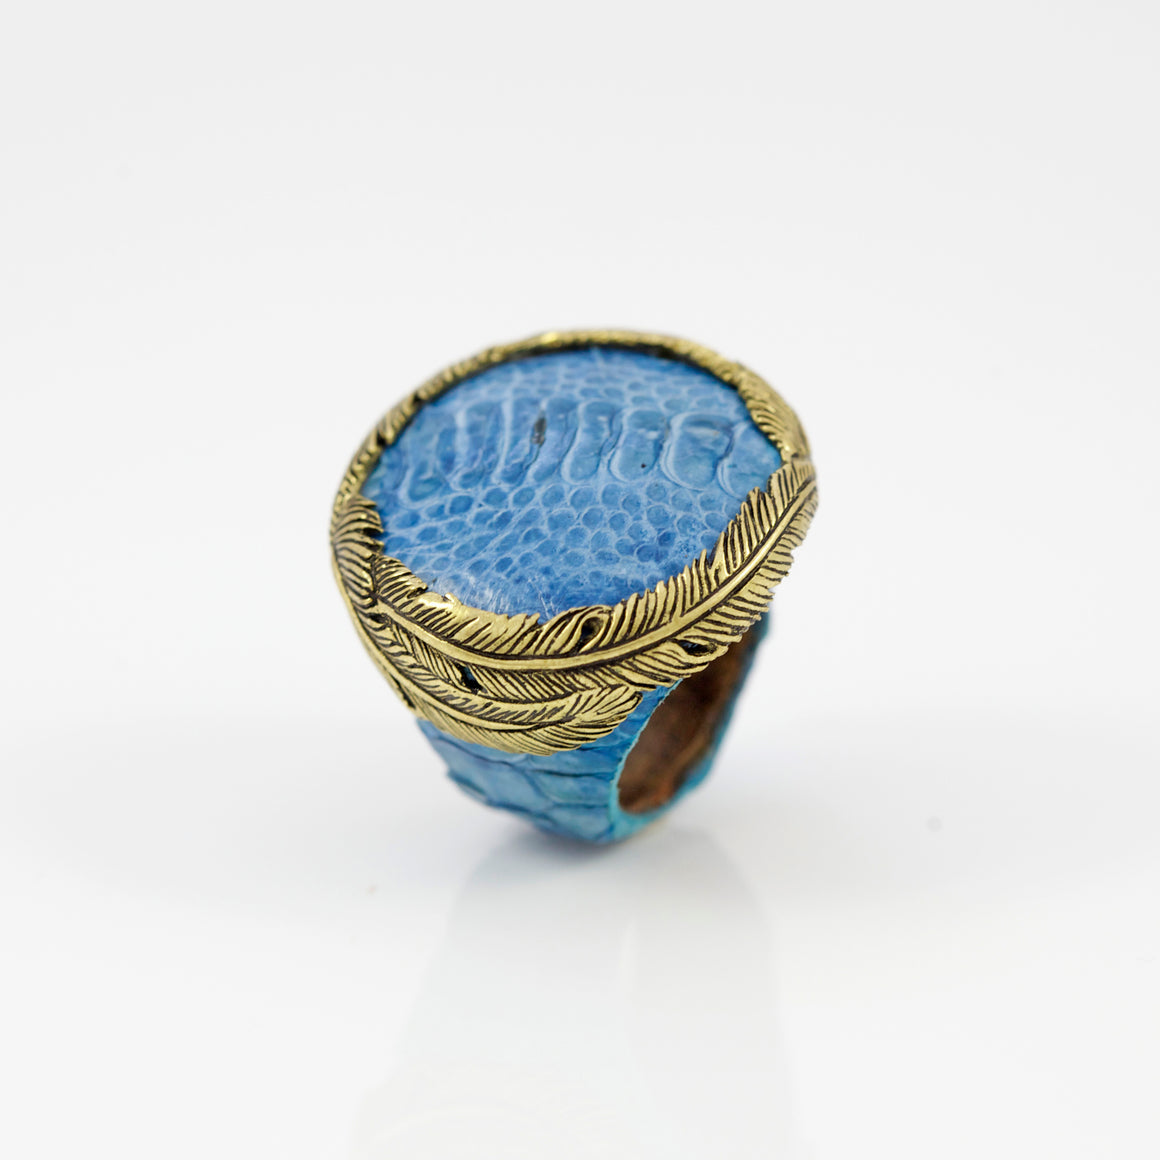 OSTRICH SKIN RING IN TURQUOISE WITH YELLOW BRASS FEATHER CROWN